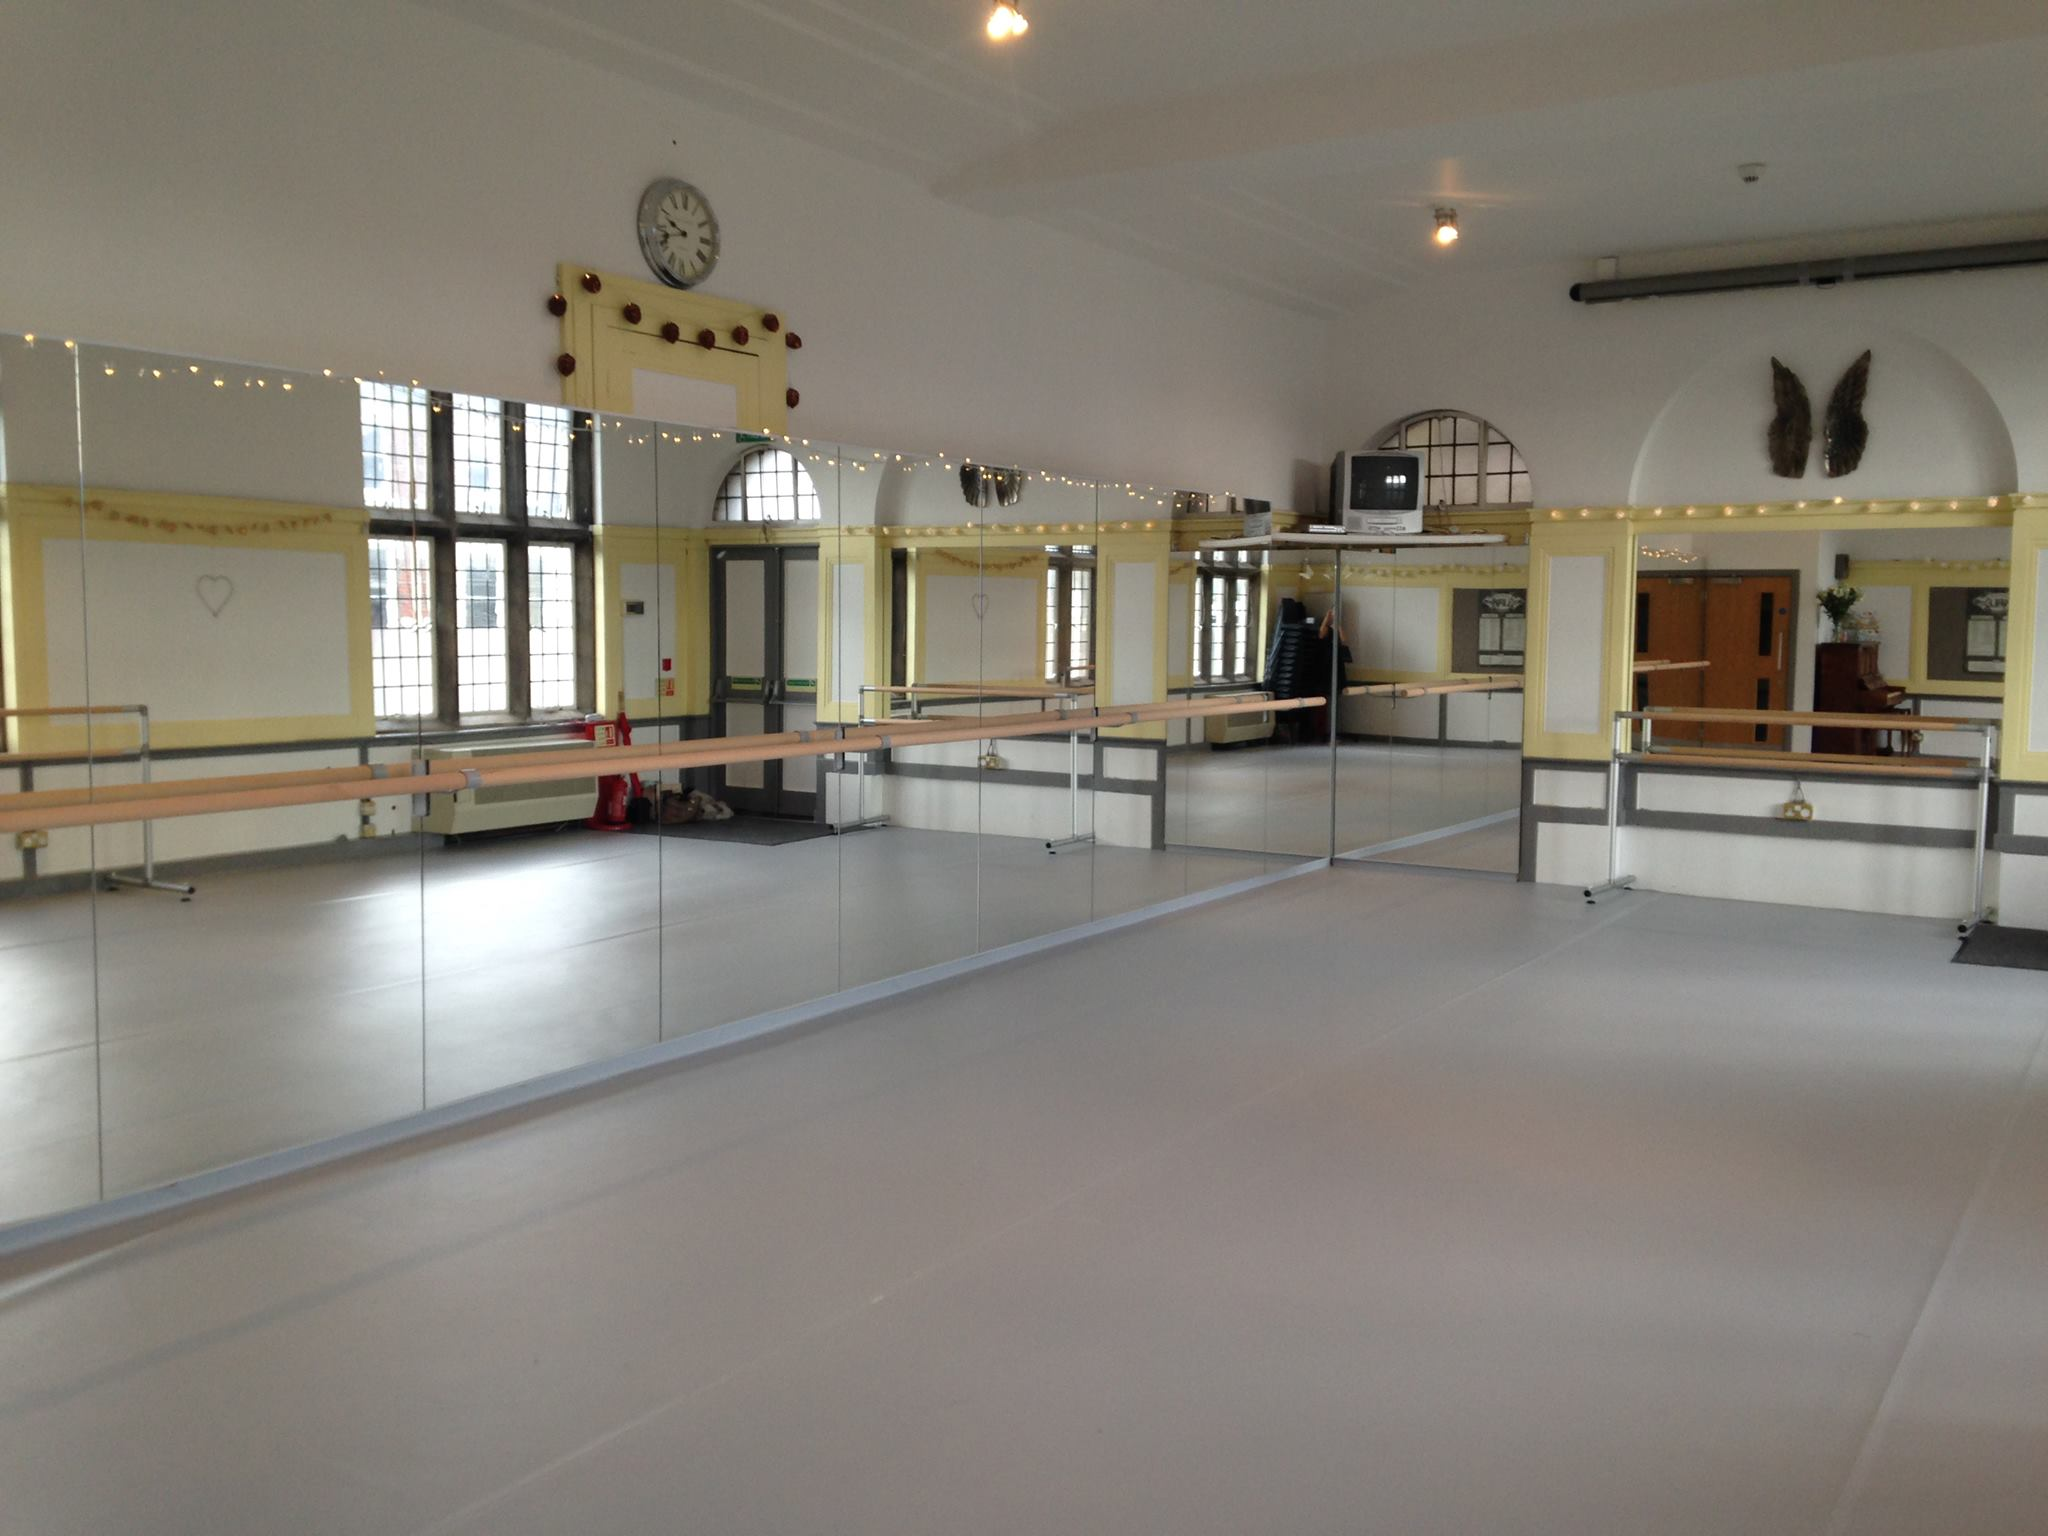 Inspire Ballet & Dance Studio, Balham Baptist Church